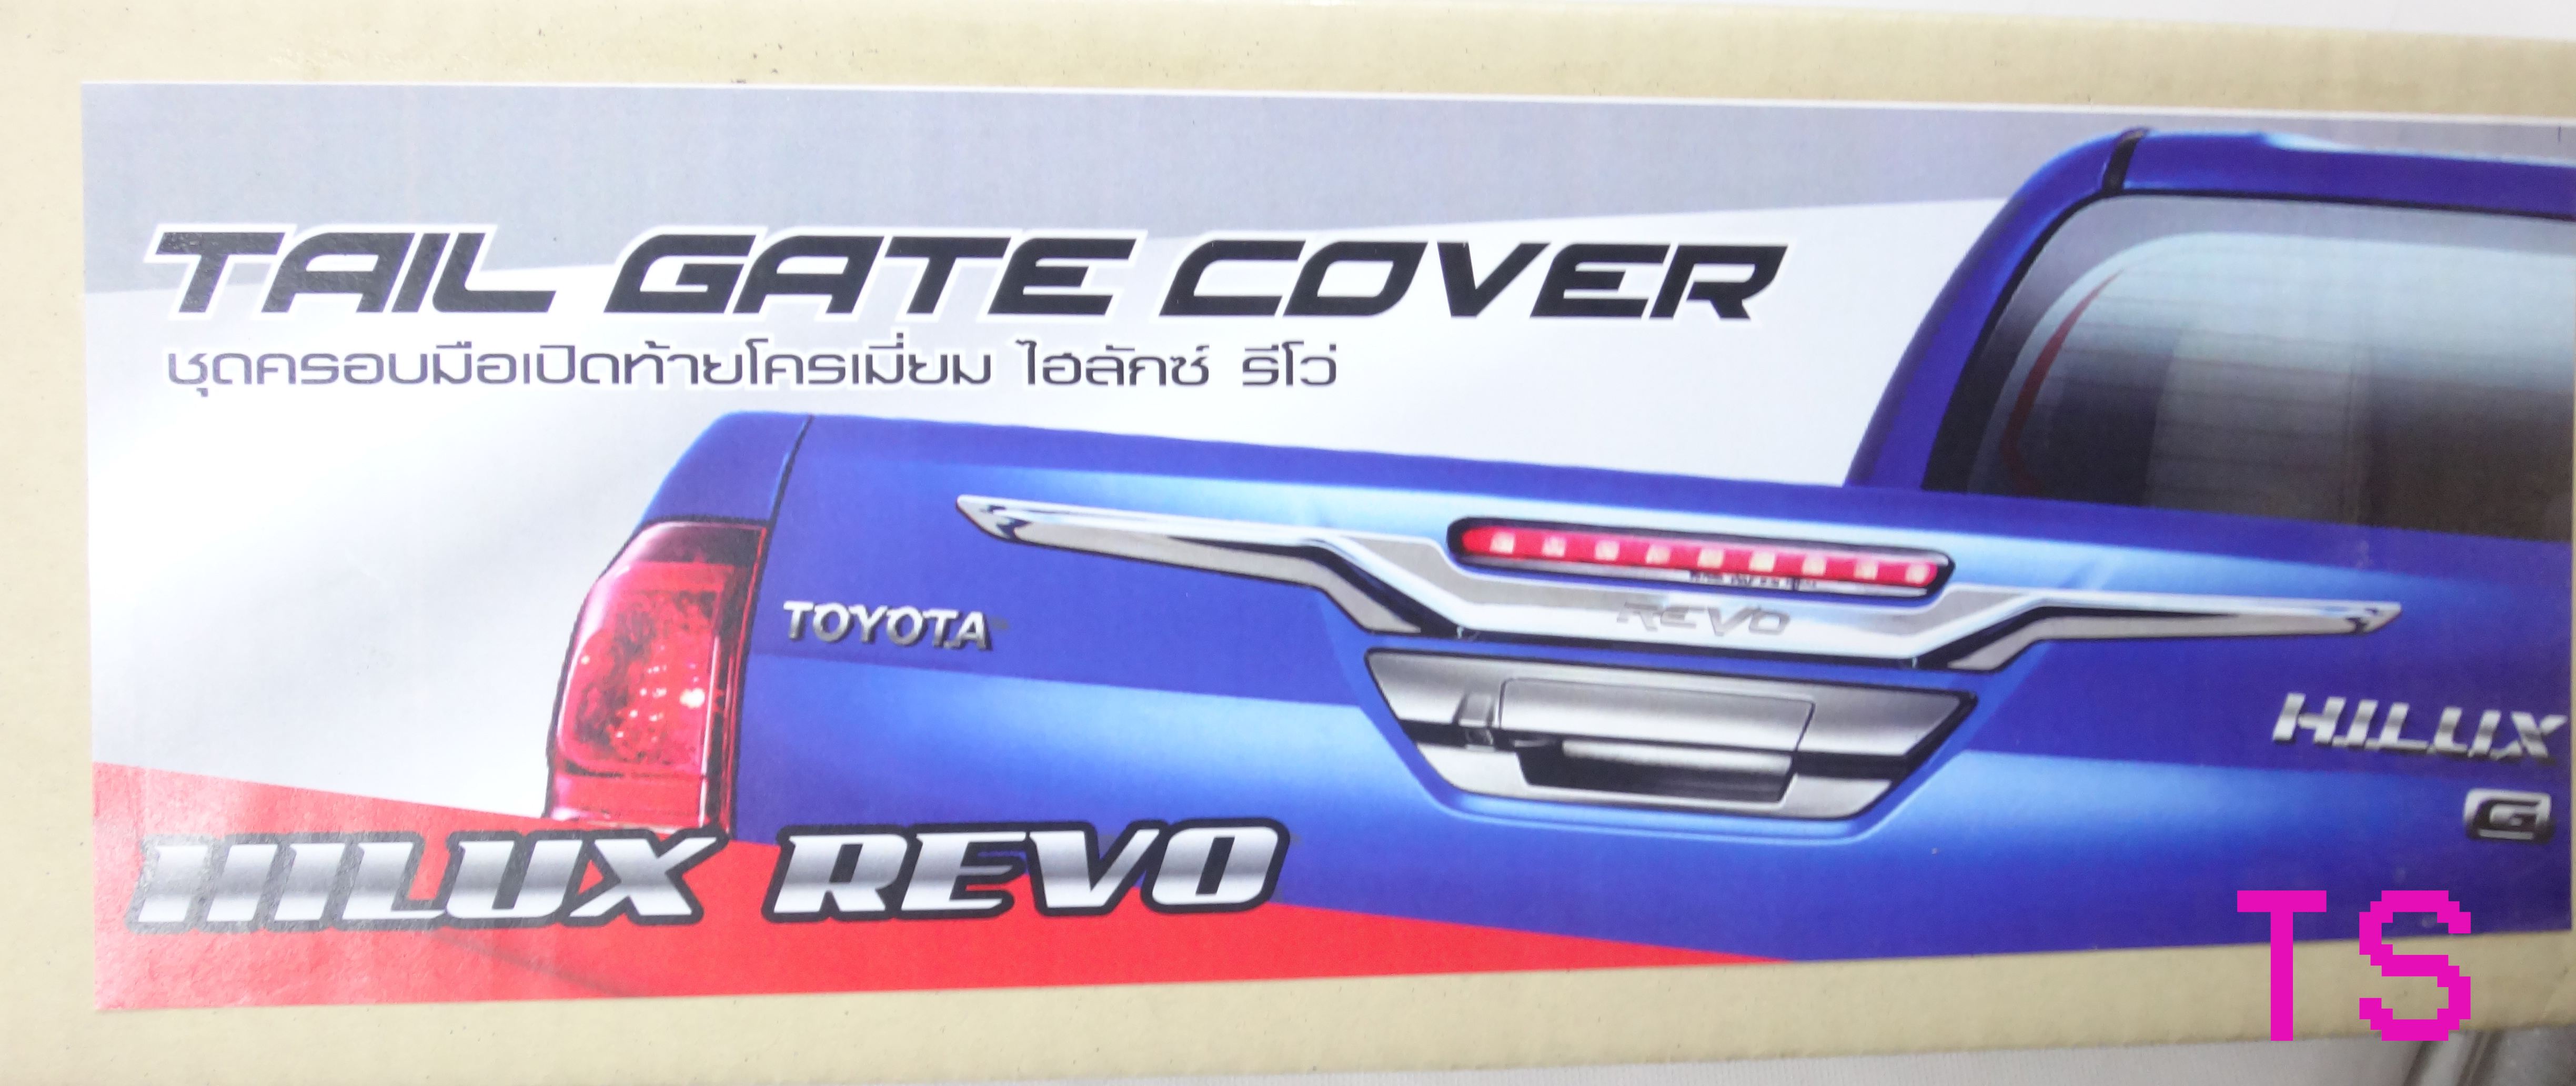 Chrome Line Rear Tailgate Cover For Toyota Hilux Revo 2dr